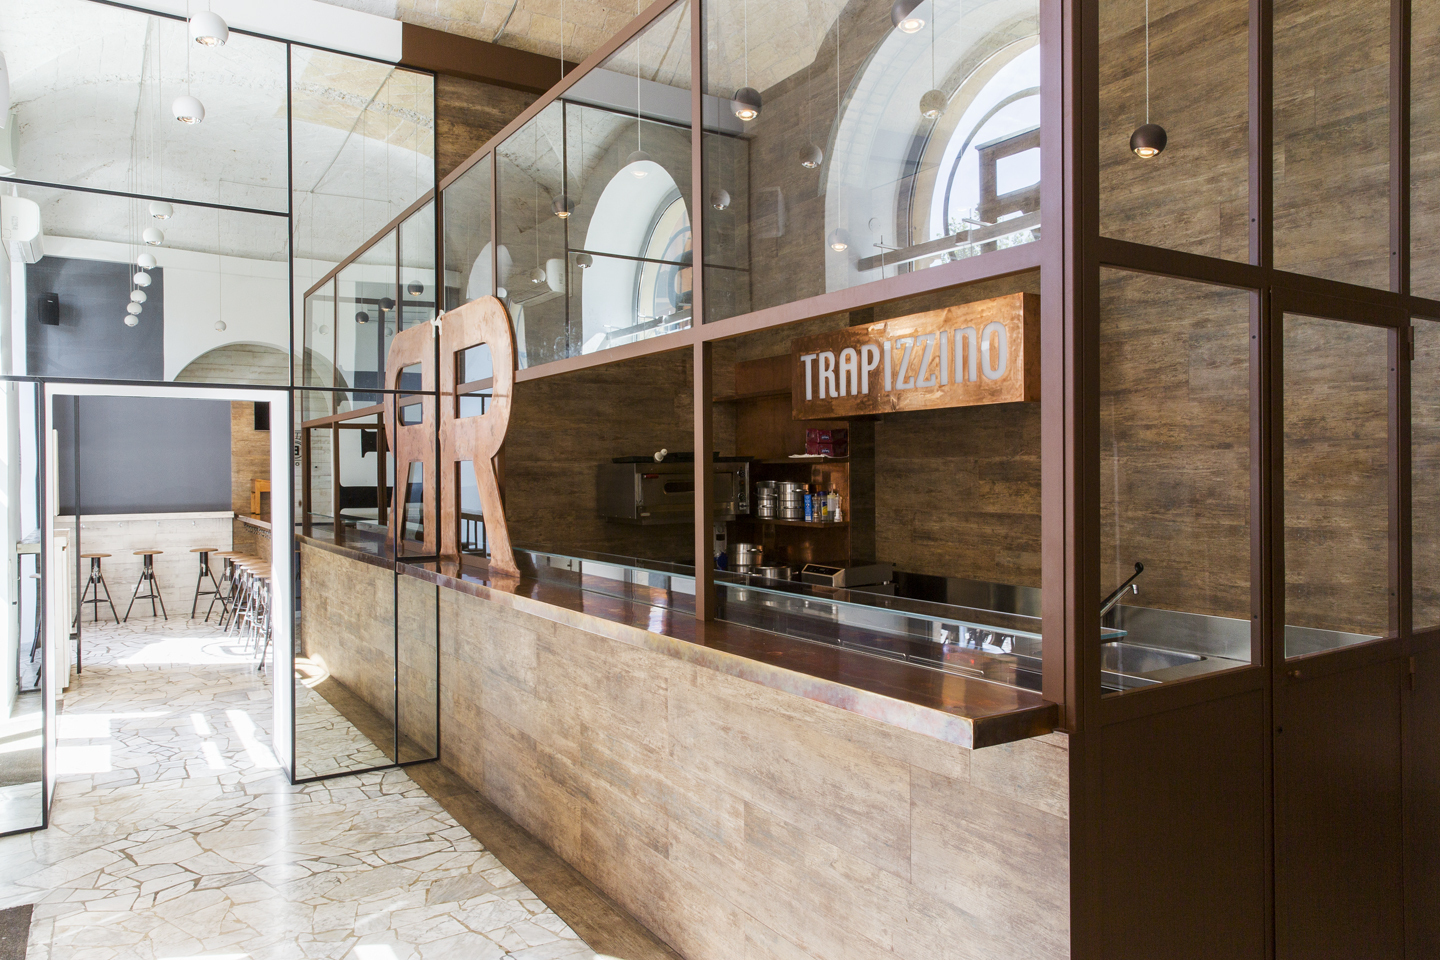 Gallery of Small Cafe Designs: 20 Aspirational Examples in ...